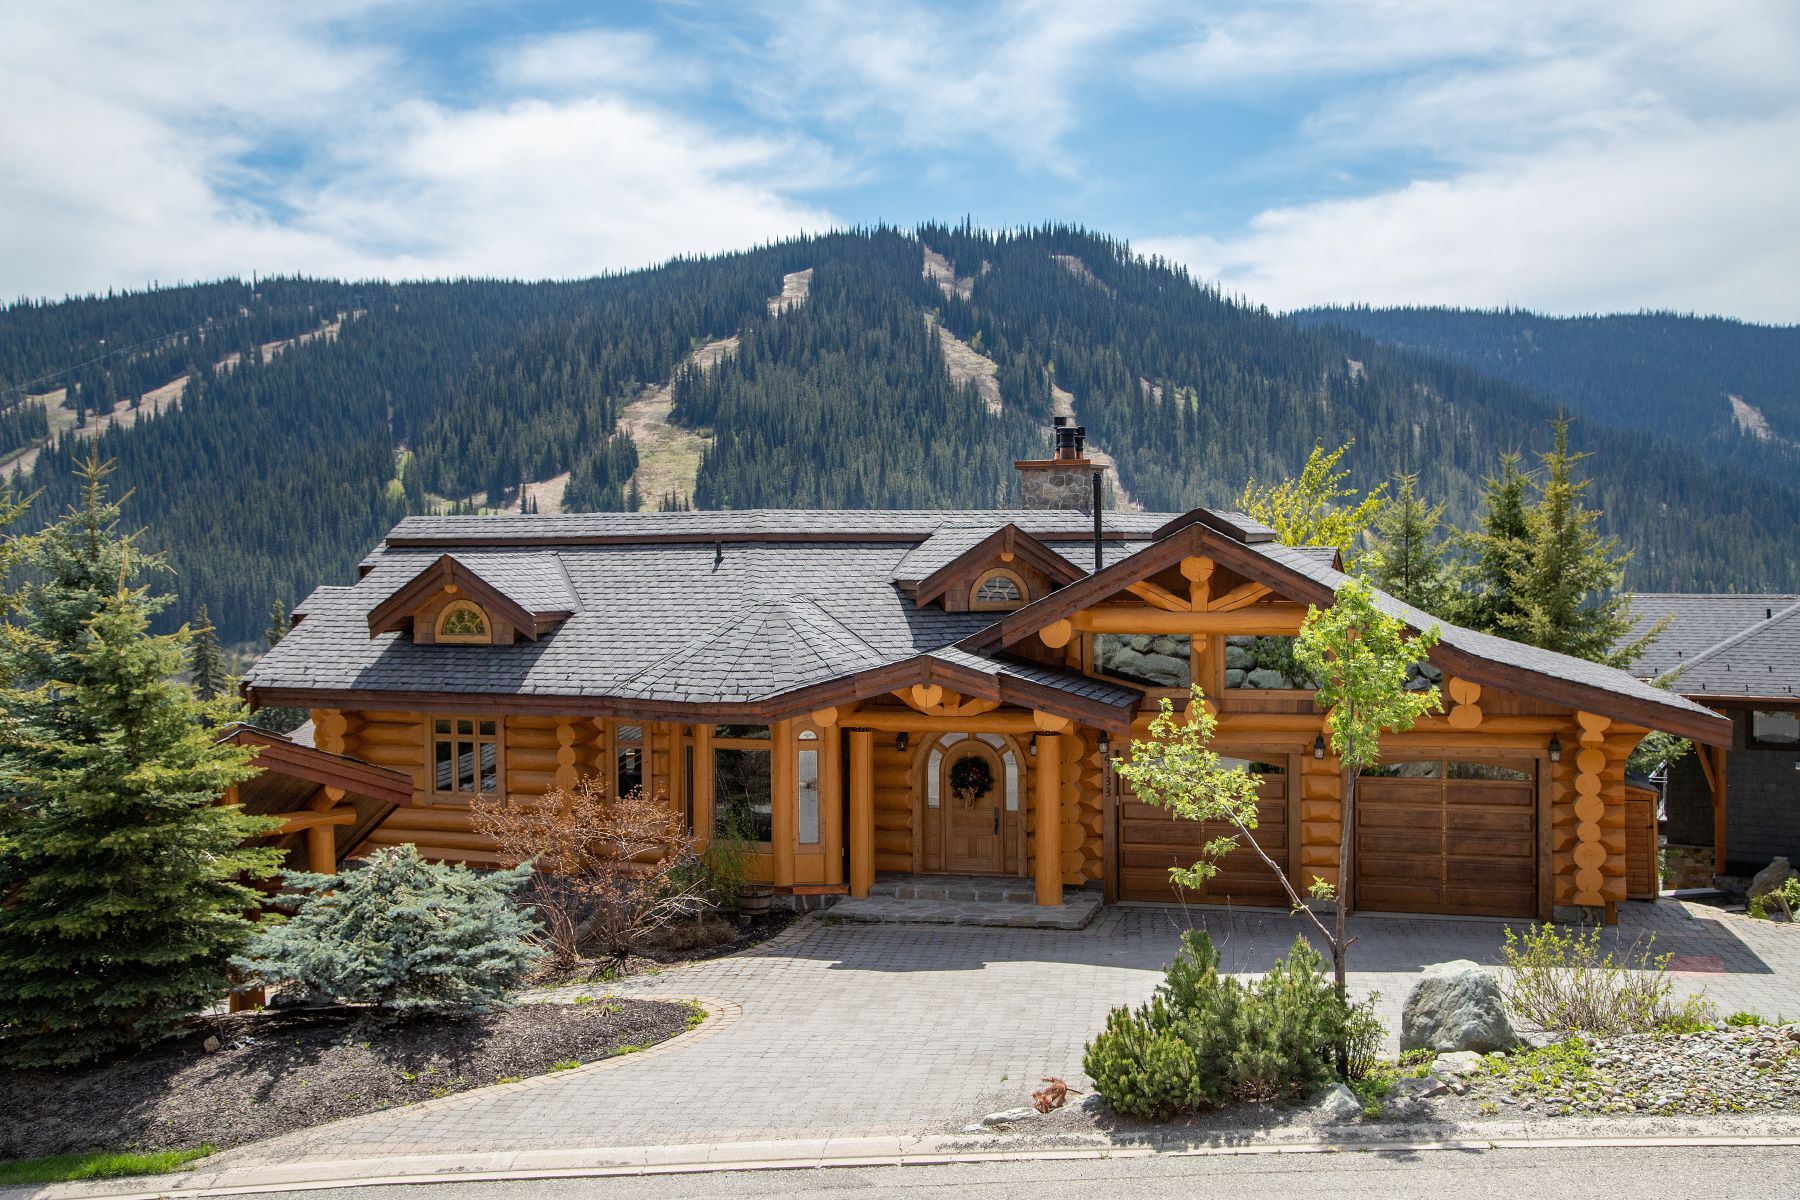 Single Family Homes for Sale at Luxurious Log Home 4133 Douglas Court Sun Peaks, British Columbia V0E 5N0 Canada